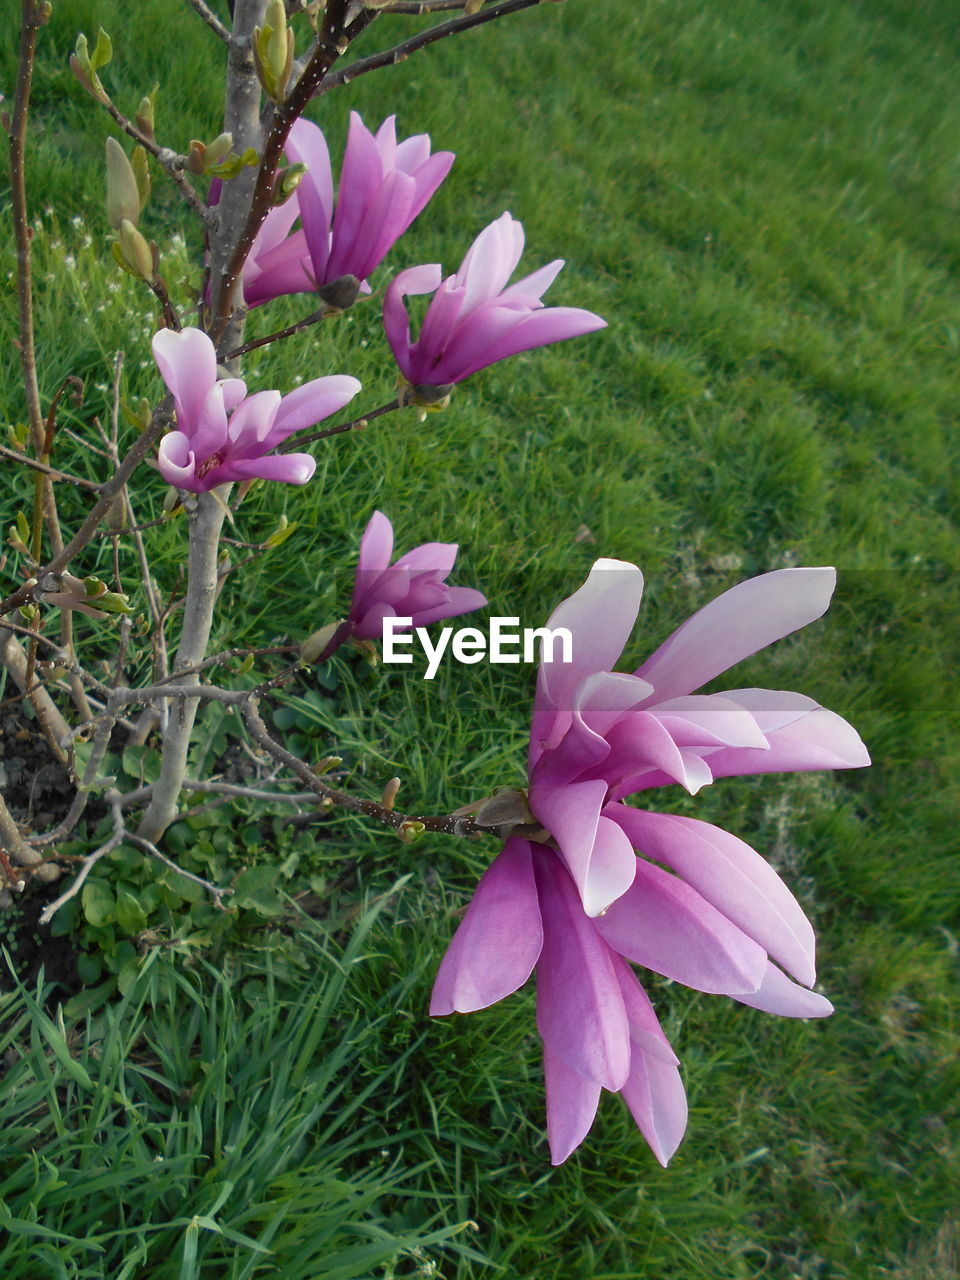 plant, flowering plant, flower, vulnerability, beauty in nature, fragility, petal, pink color, growth, freshness, close-up, inflorescence, flower head, grass, field, nature, land, no people, day, green color, outdoors, purple